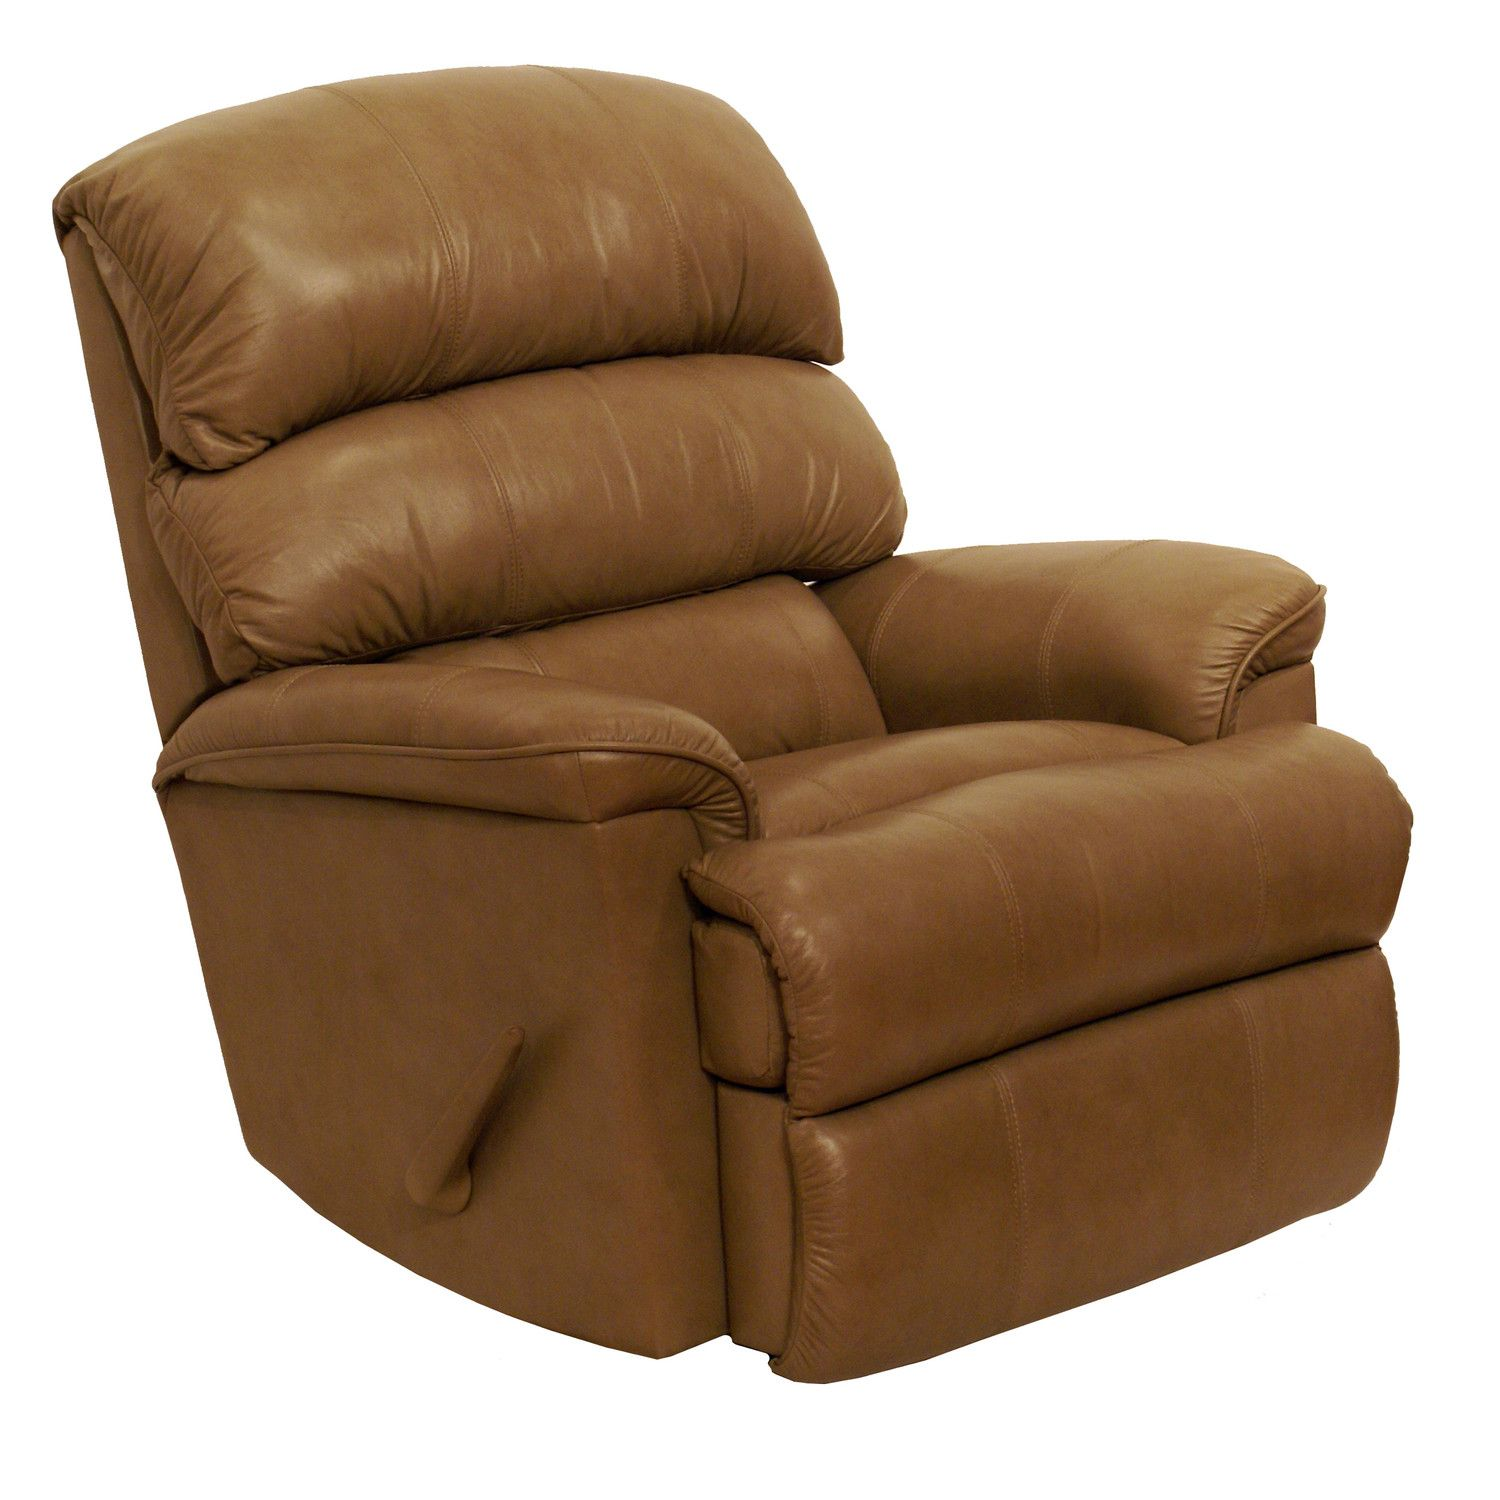 Image of most comfortable recliner you want to have